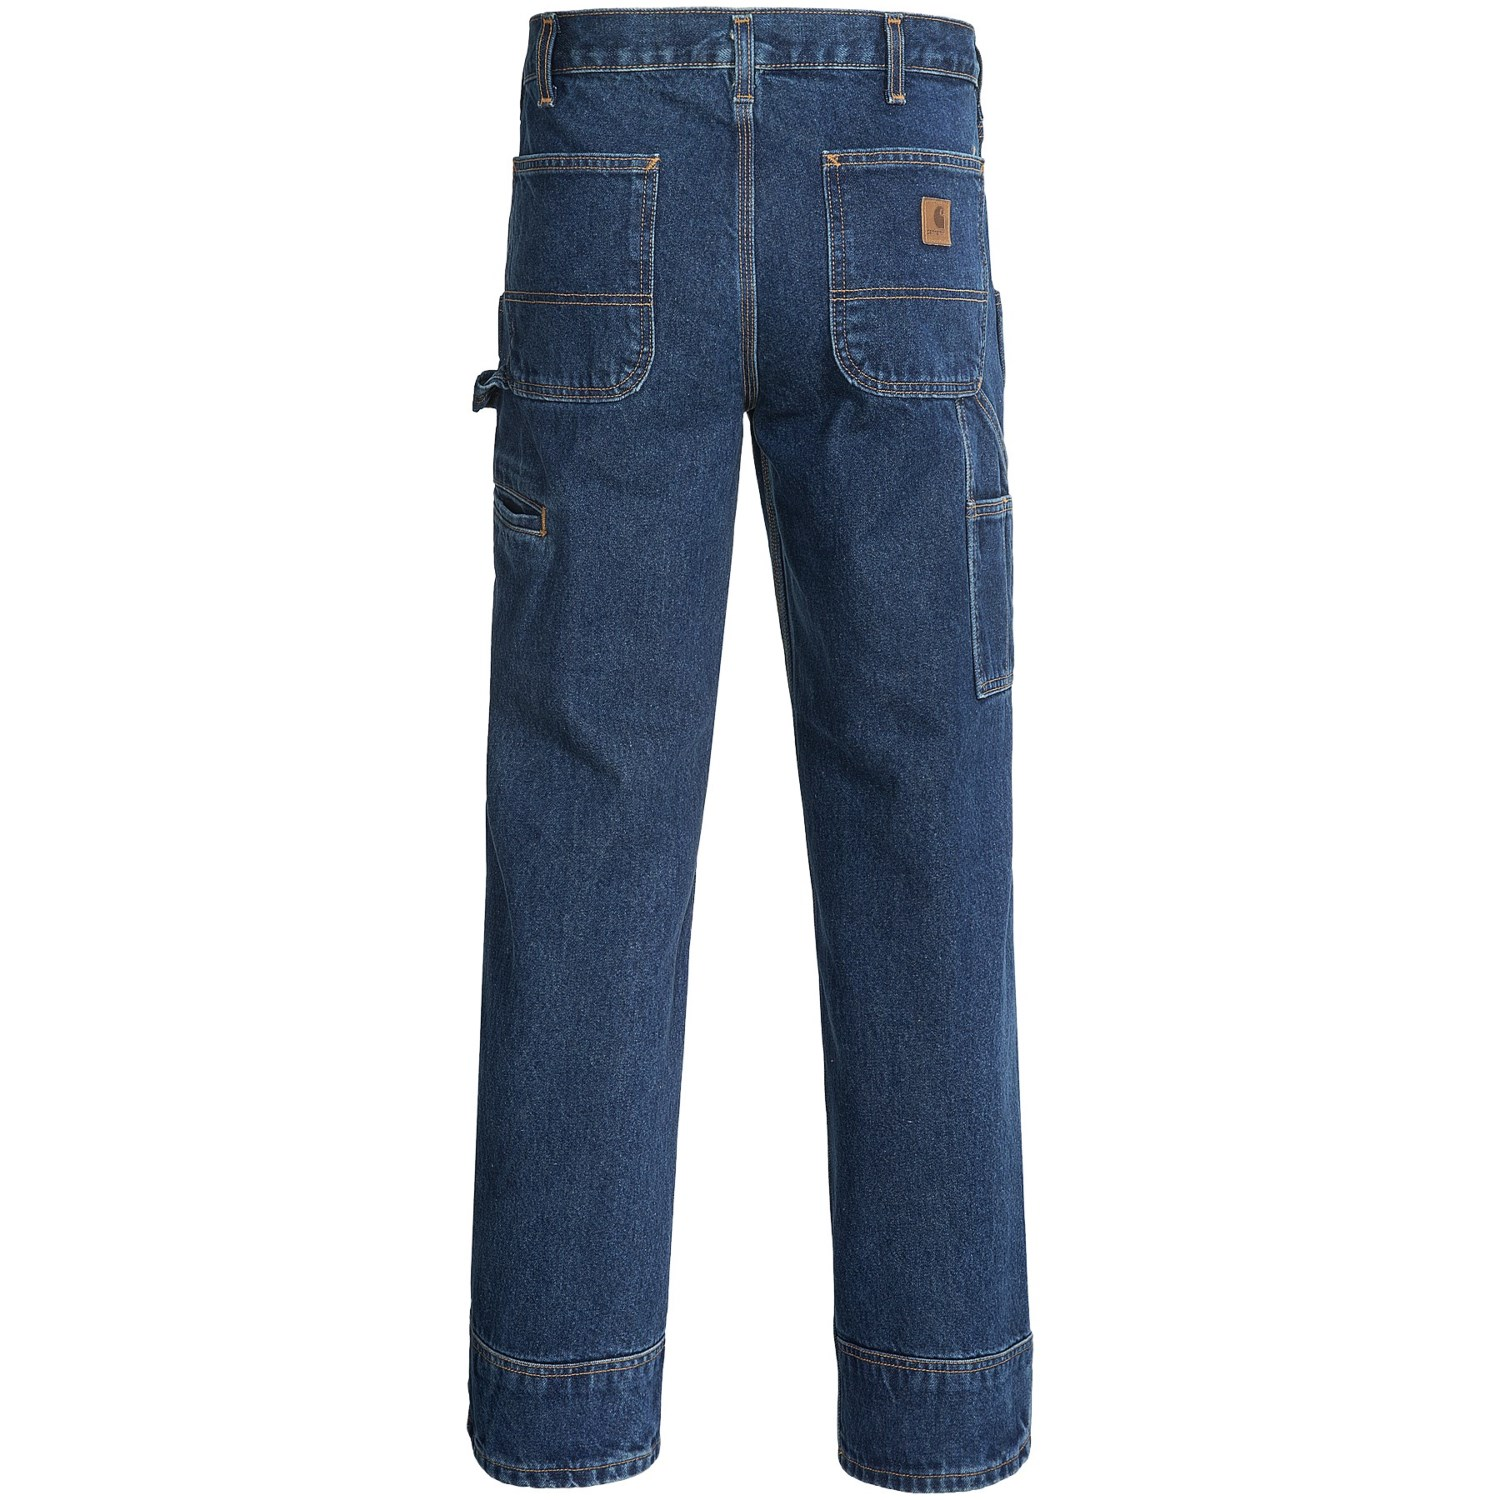 Carhartt Pike Water-Repellent Jeans (For Men) 8586M